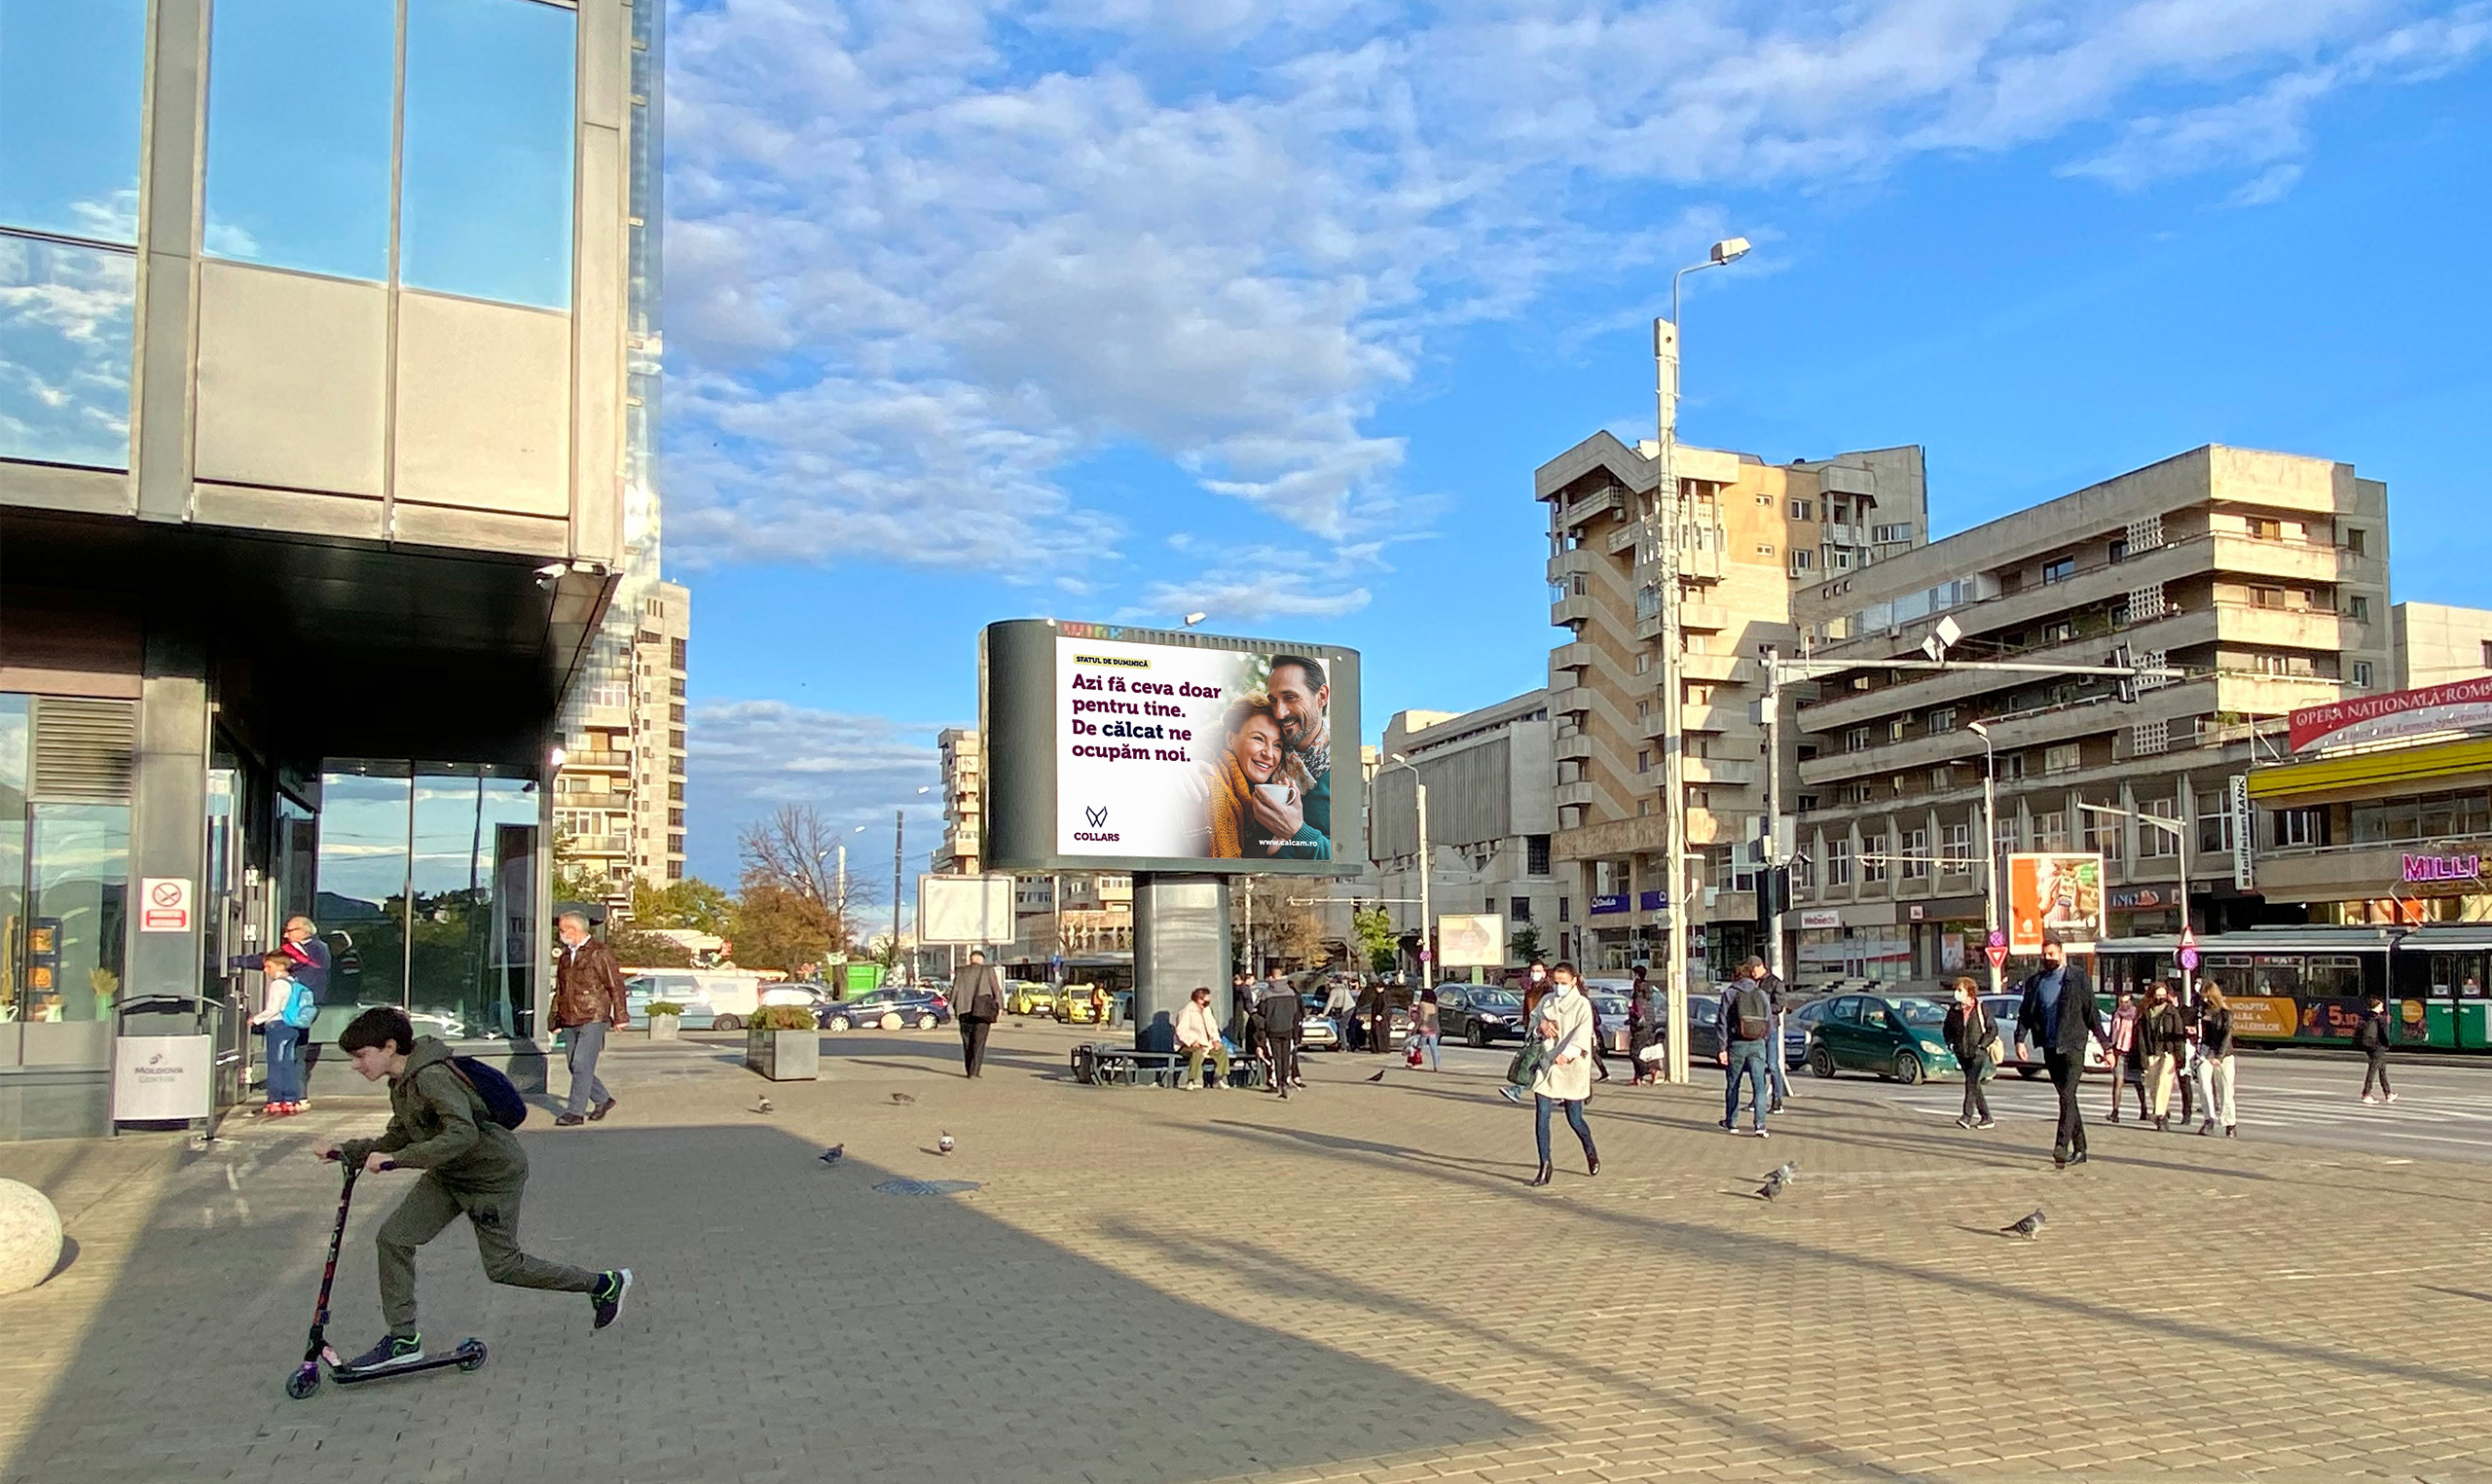 2.2billboard-outdoor-digital-iasi-publicitate-collars-duminica